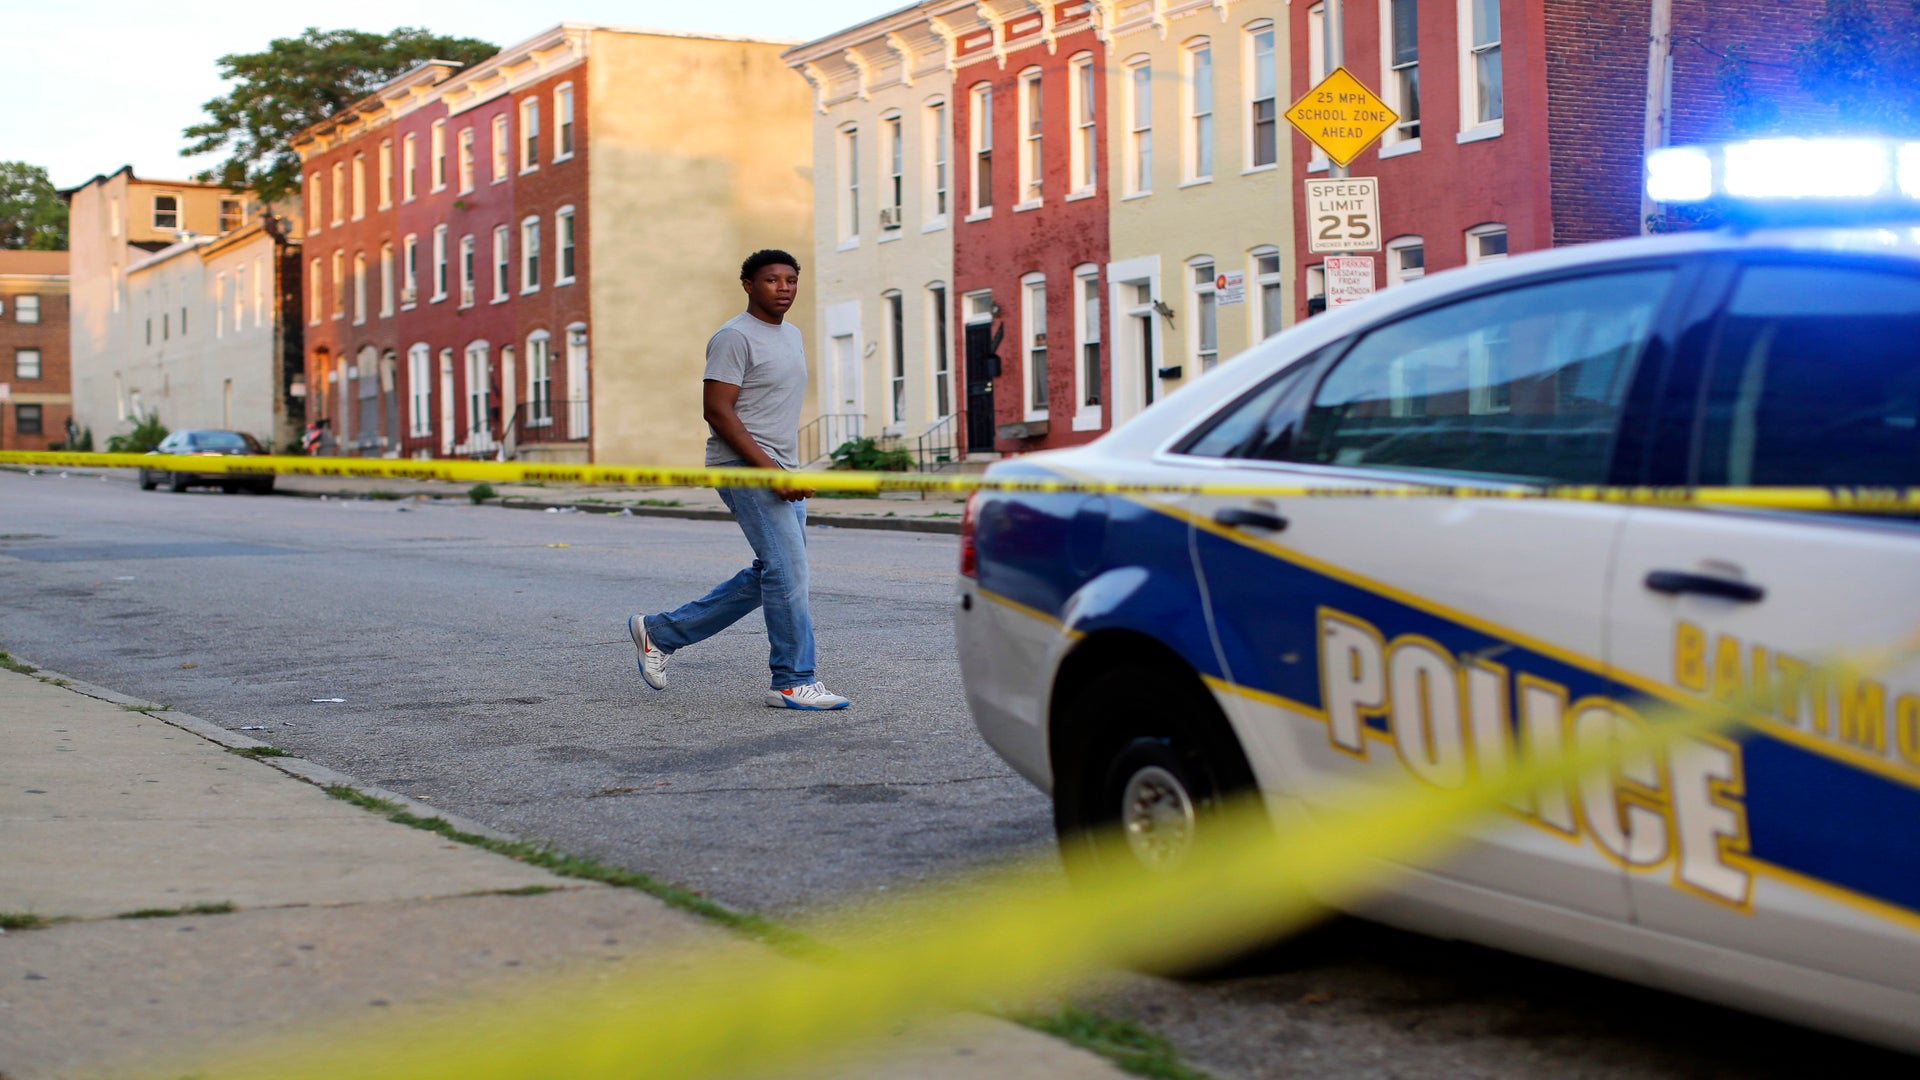 Trump Administration Objections Won't Stop Overhaul Of The Baltimore Police Department